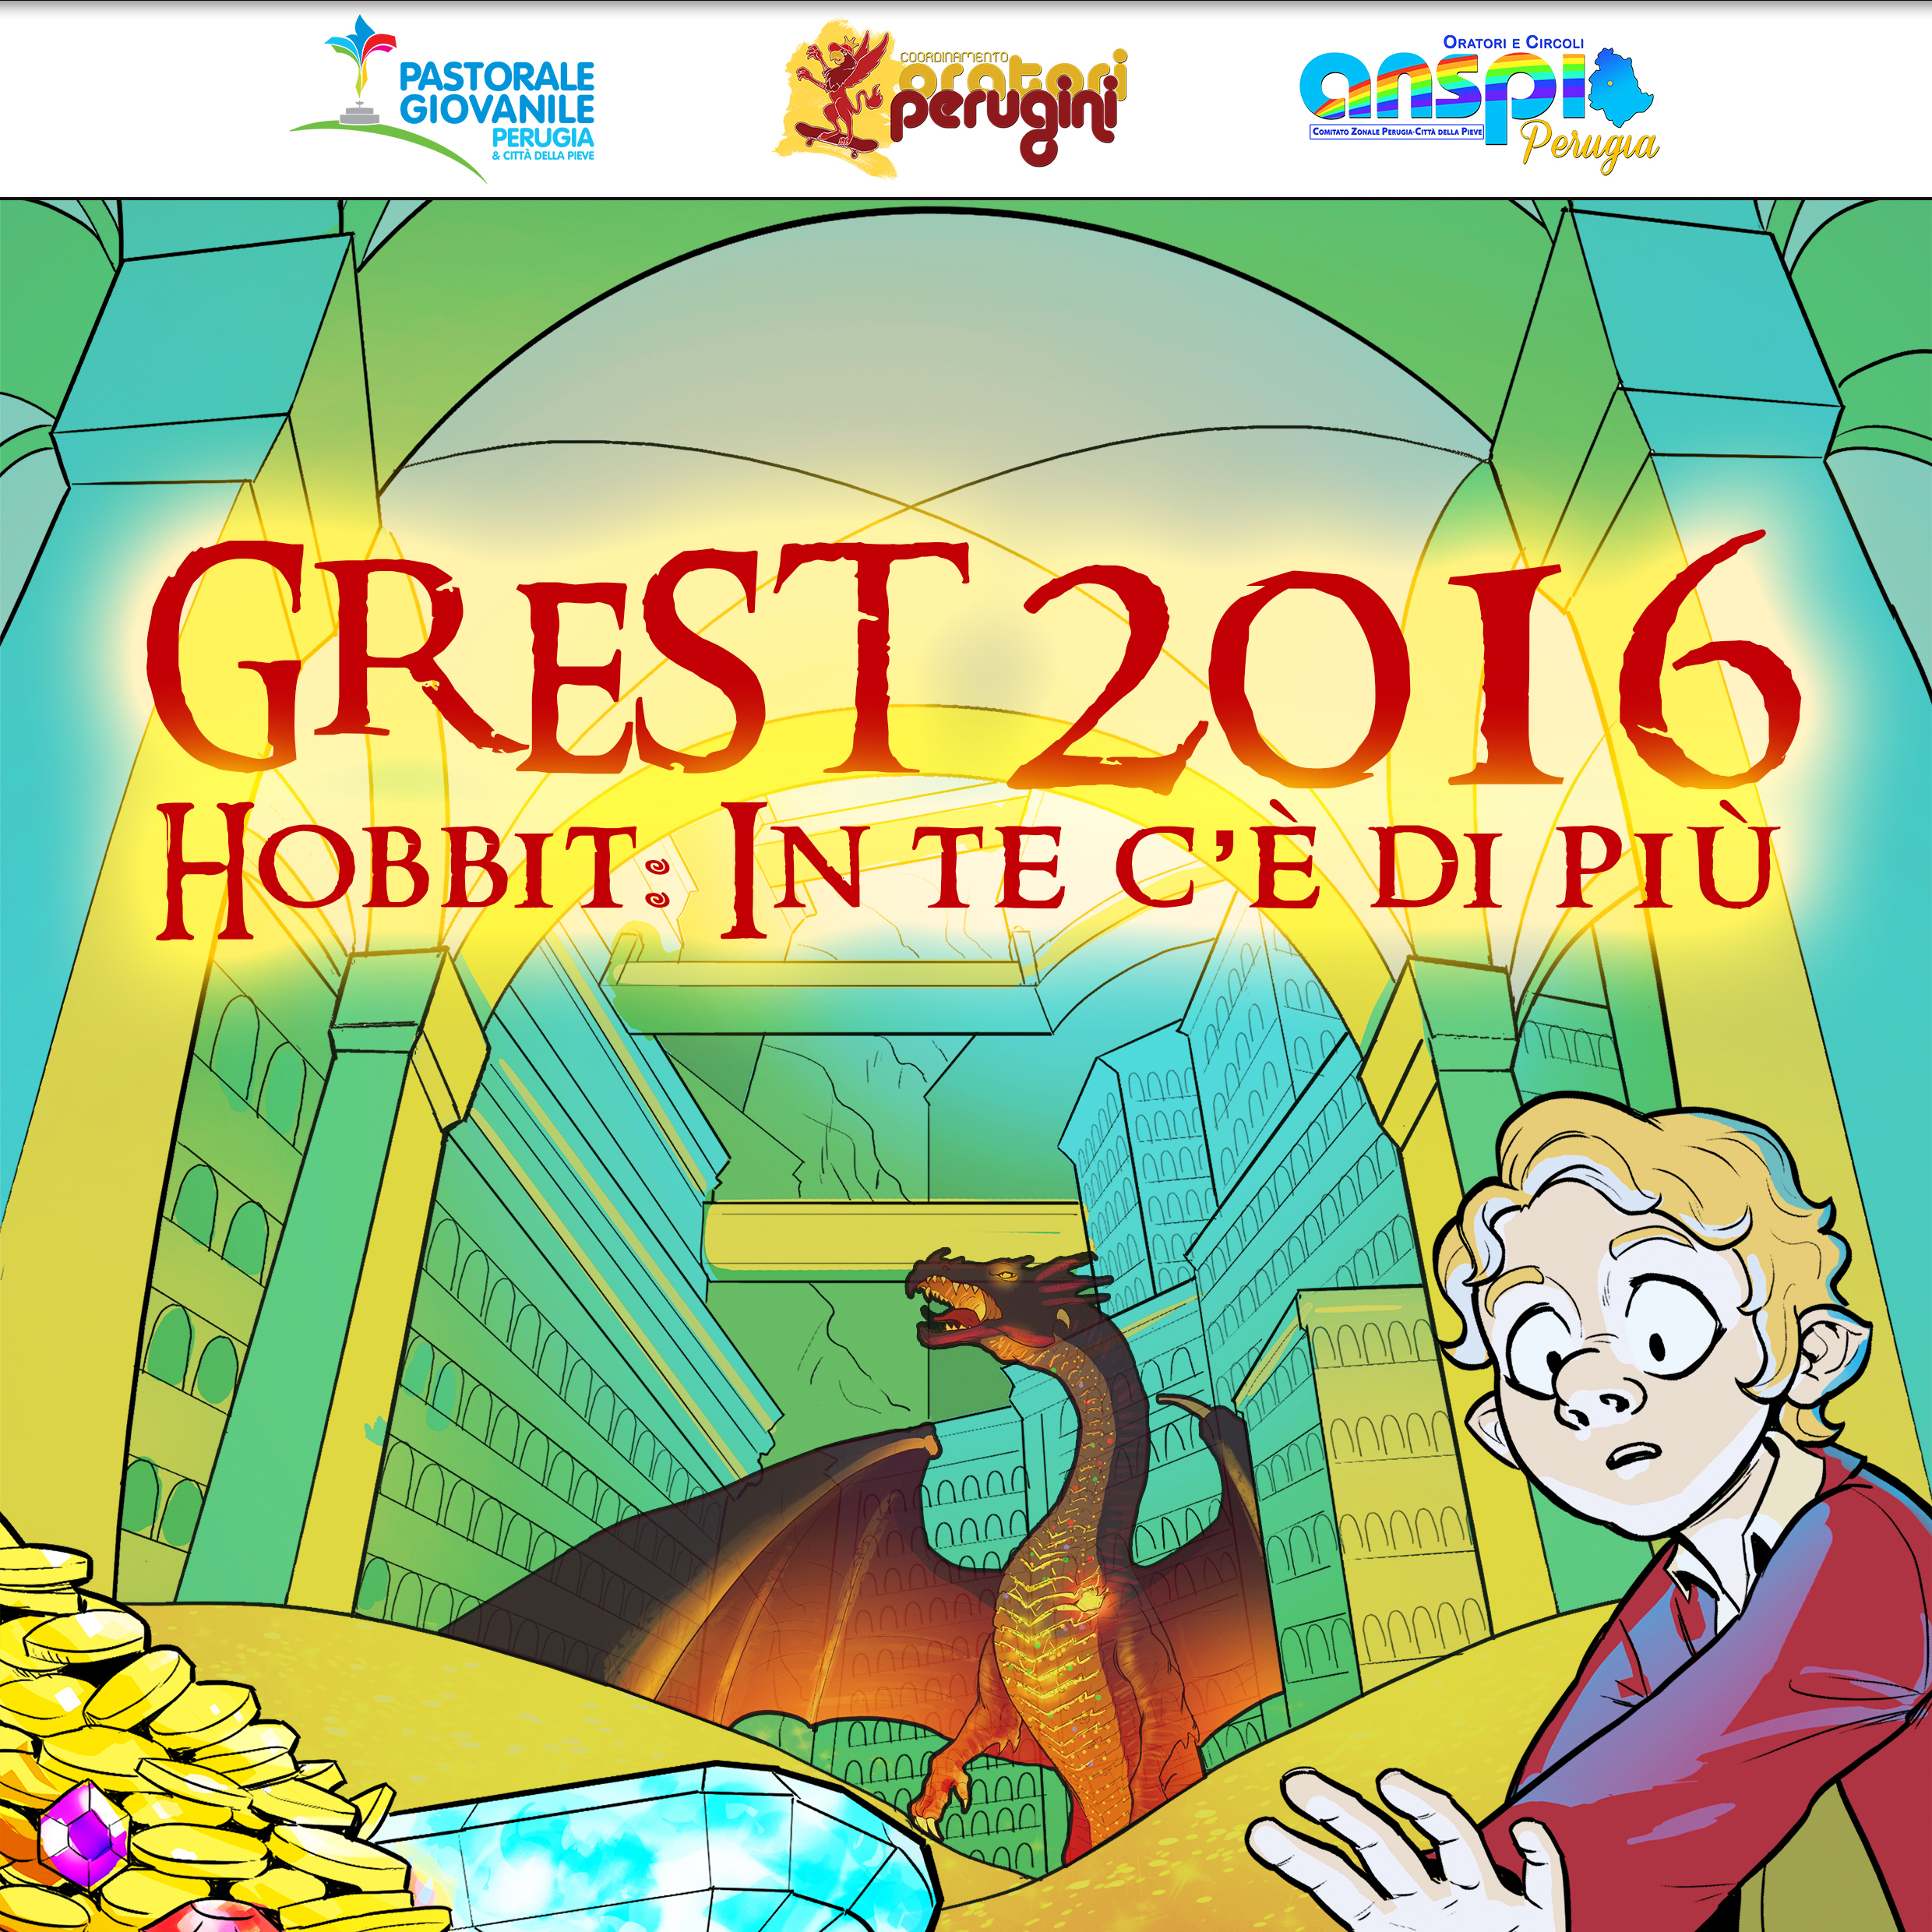 QuadratoGresto2016